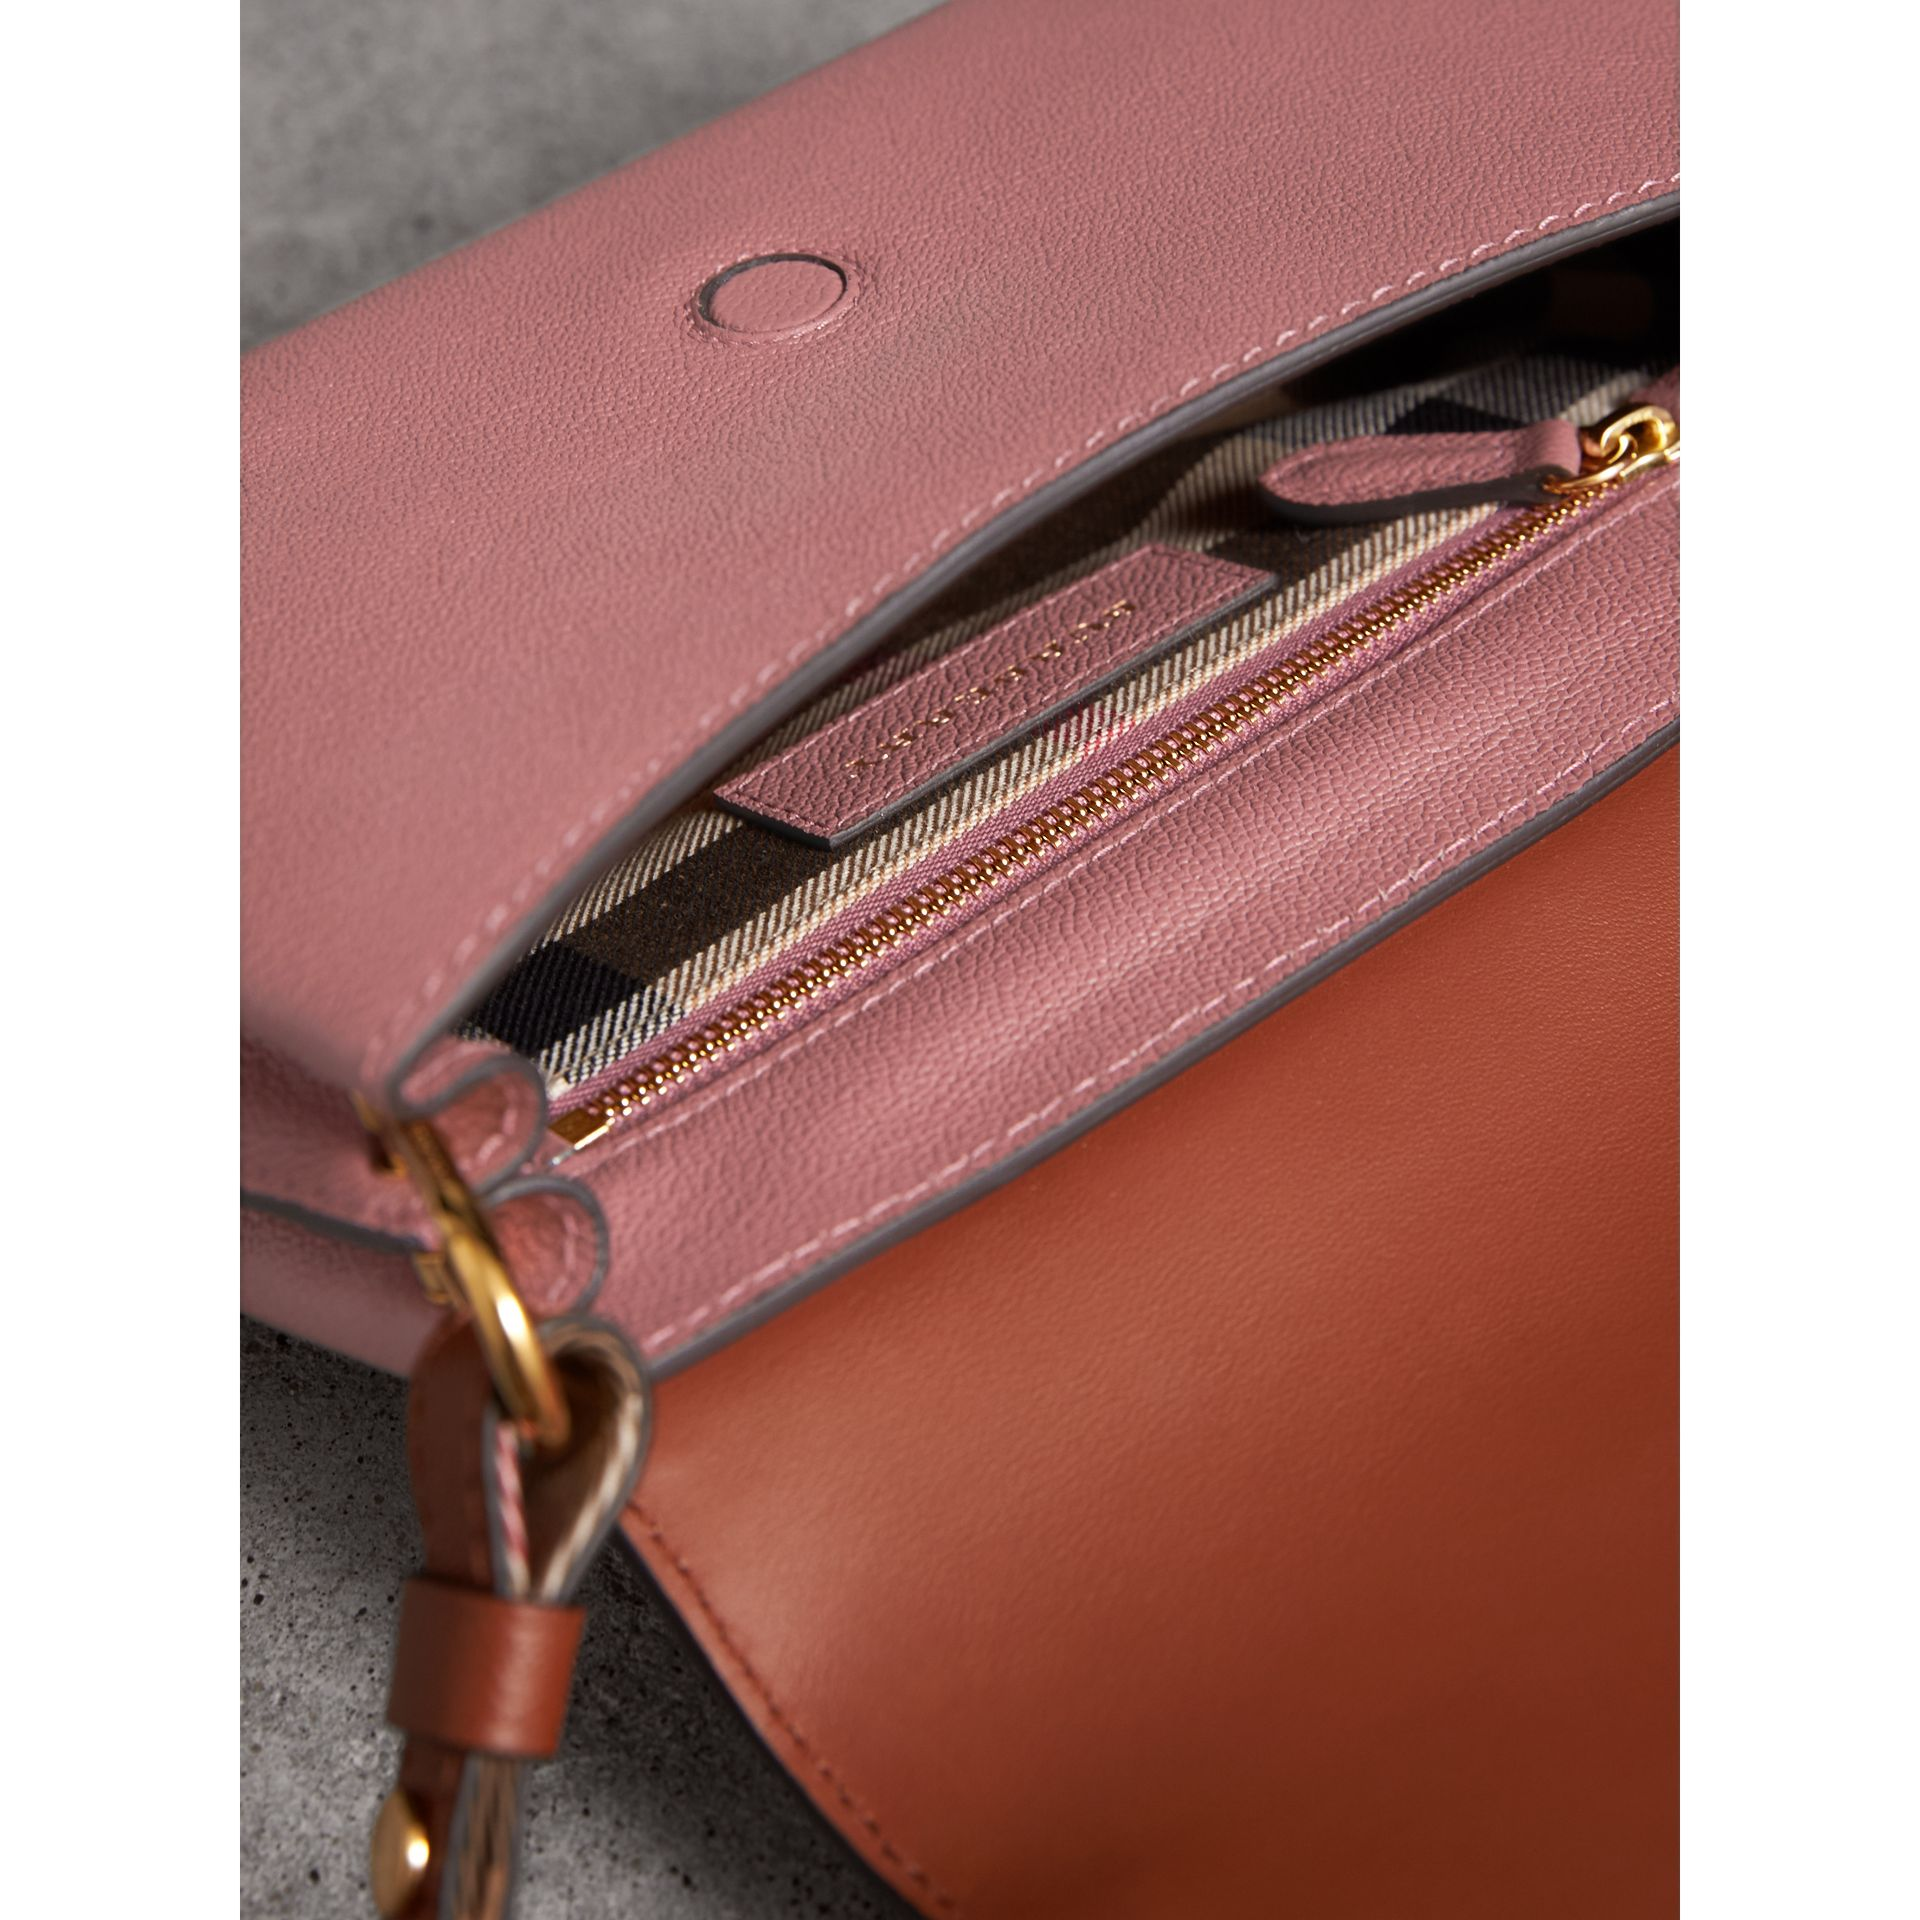 The Buckle Crossbody Bag in Trompe L'oeil Leather in Dusty Pink/bright Toffee - Women | Burberry - gallery image 5